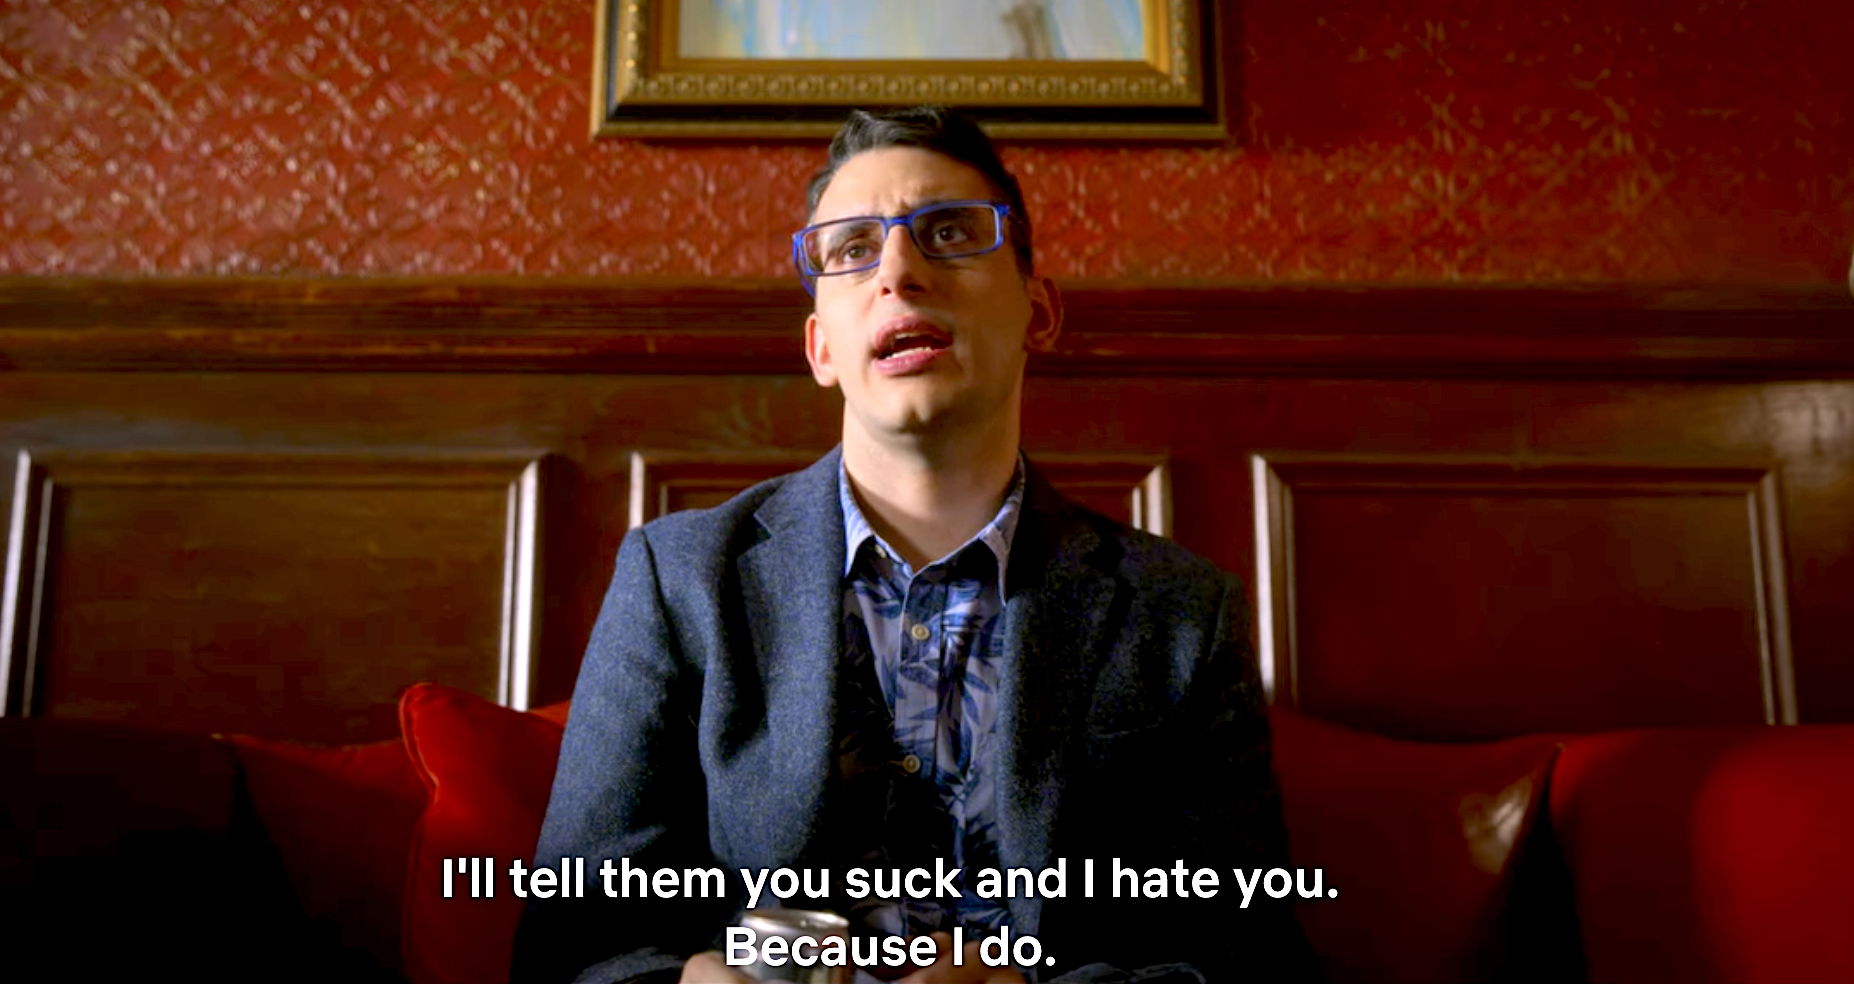 A still from The Politician showing Andrew sitting down in Payton's office against a red and mahogany wall in a blue suit saying I'll tell them you suck and I hate you because I do